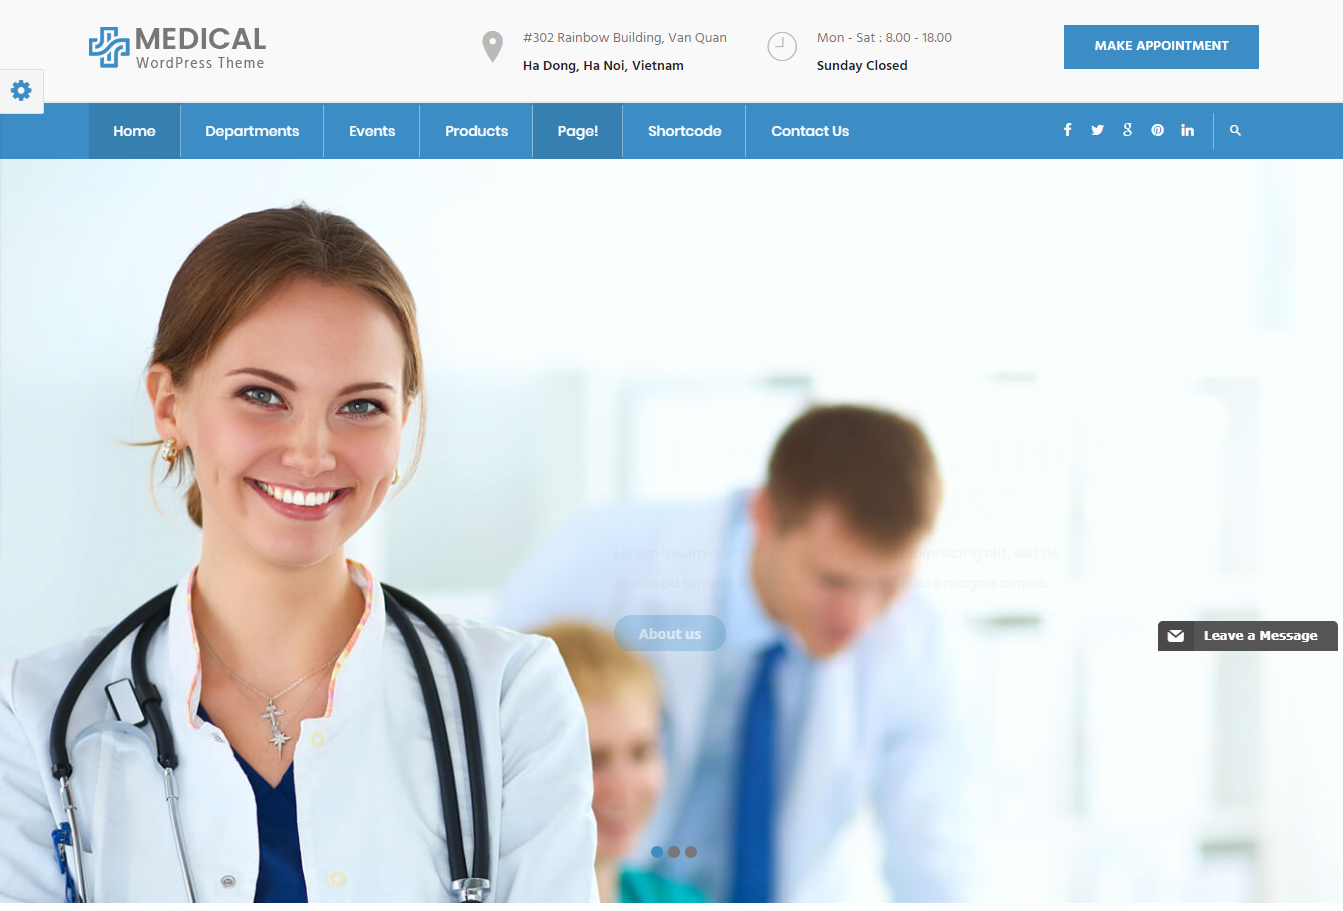 inMedical - Multipurpose Medical WordPress Theme